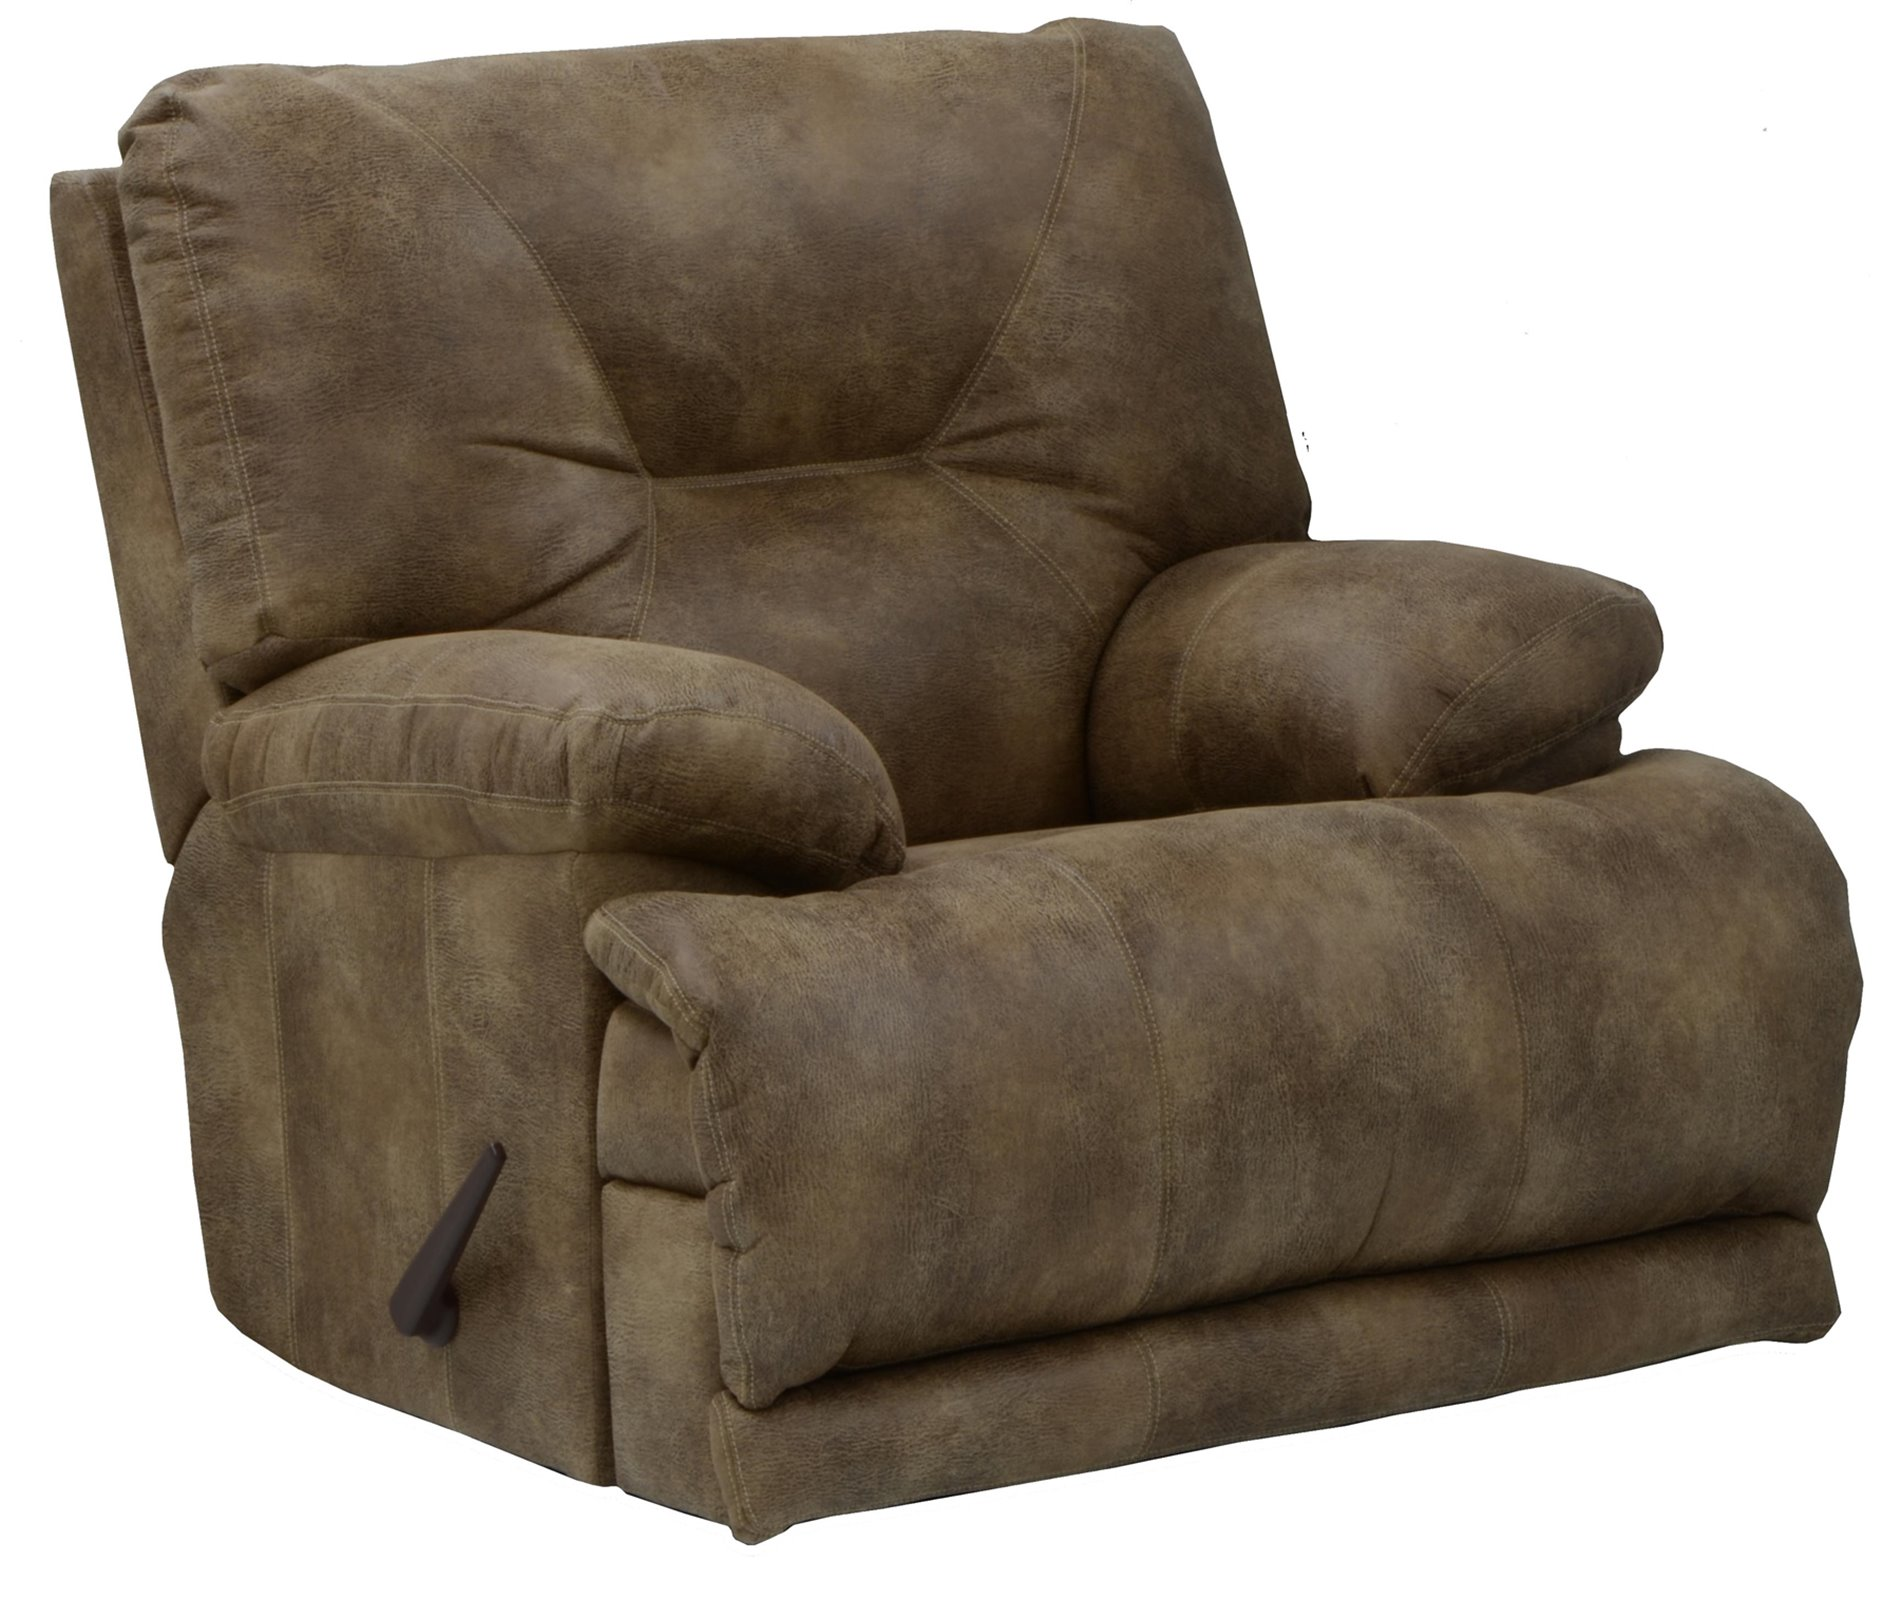 Recliners and Chairs